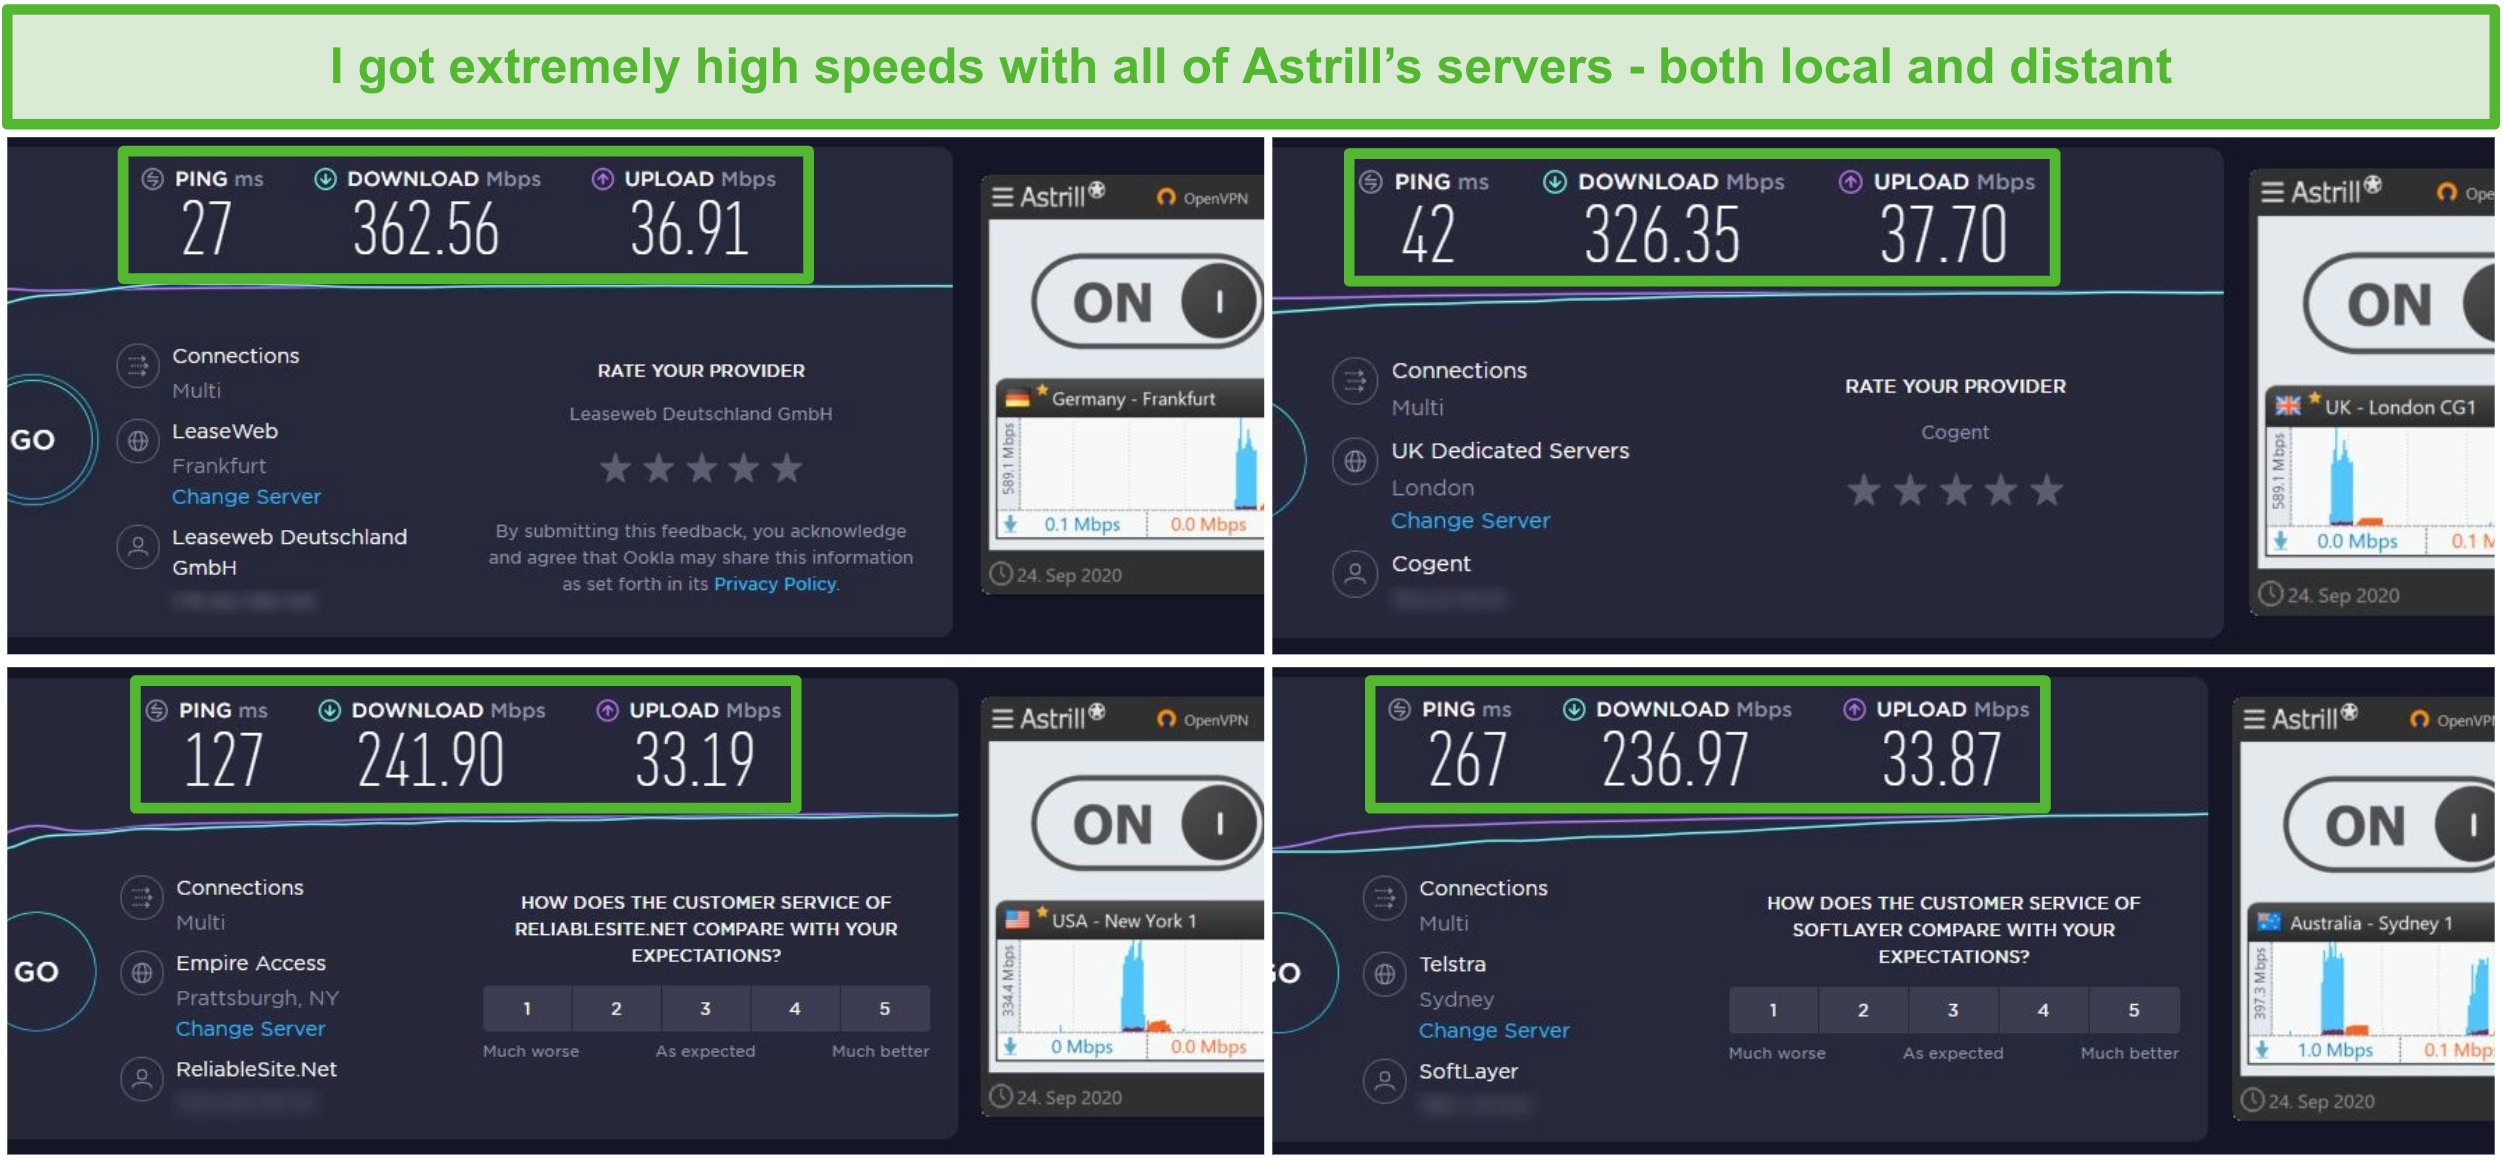 Screenshot of 4 speed tests with Astrill's Frankfurt, London, New York, and Sydney Servers.